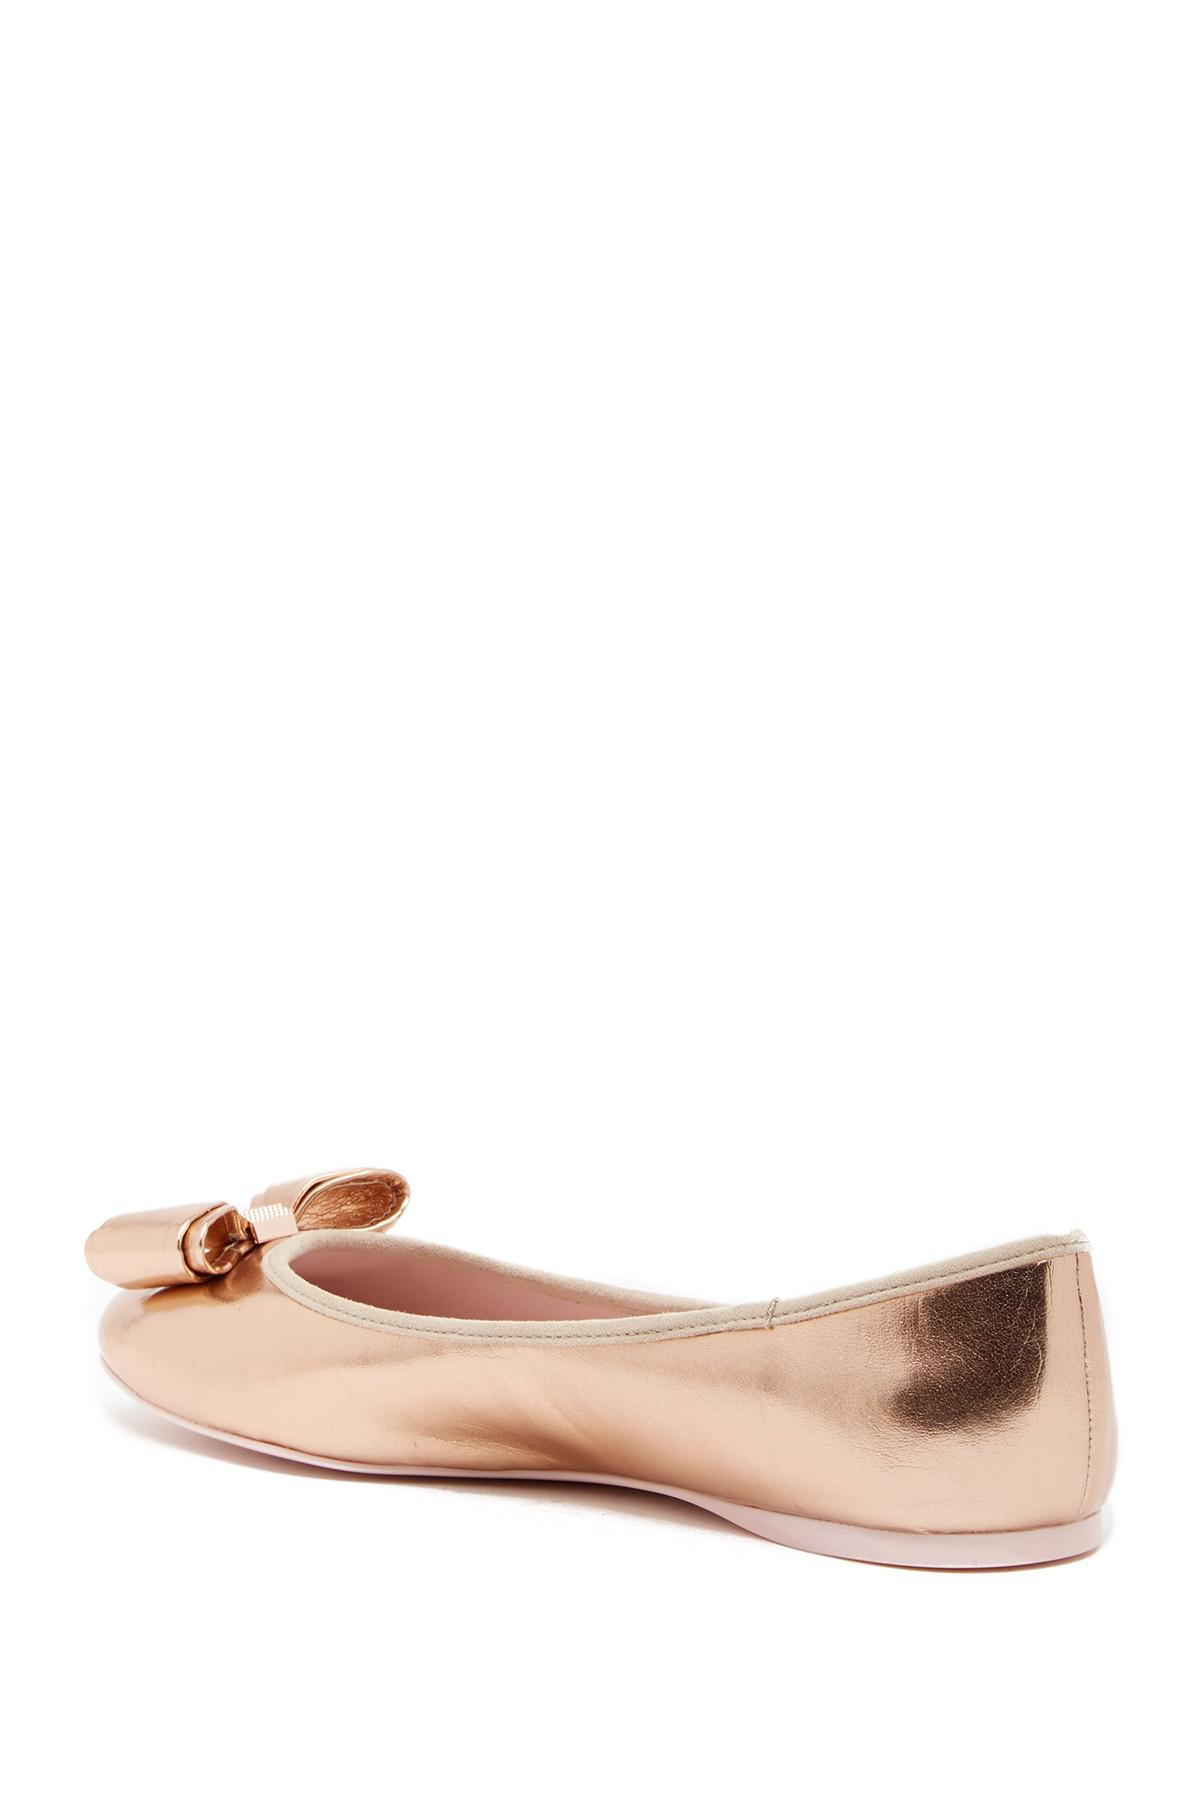 9ecce15a6b1f38 Lyst - Ted Baker Immet Bow Flat in Pink